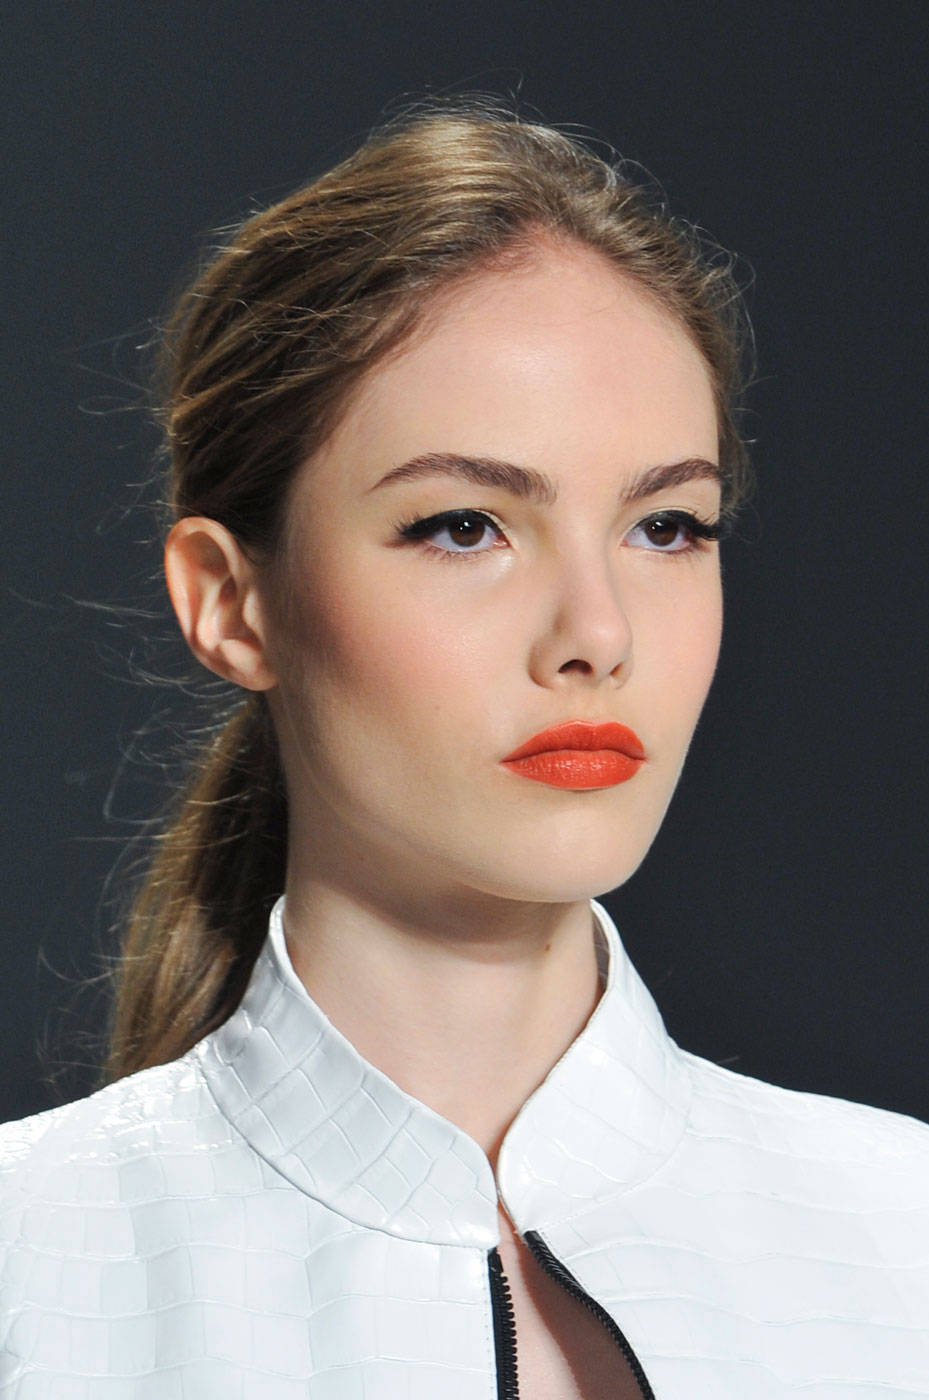 New Makeup Brushes: Electric Orange Lipstick Is A New Must!